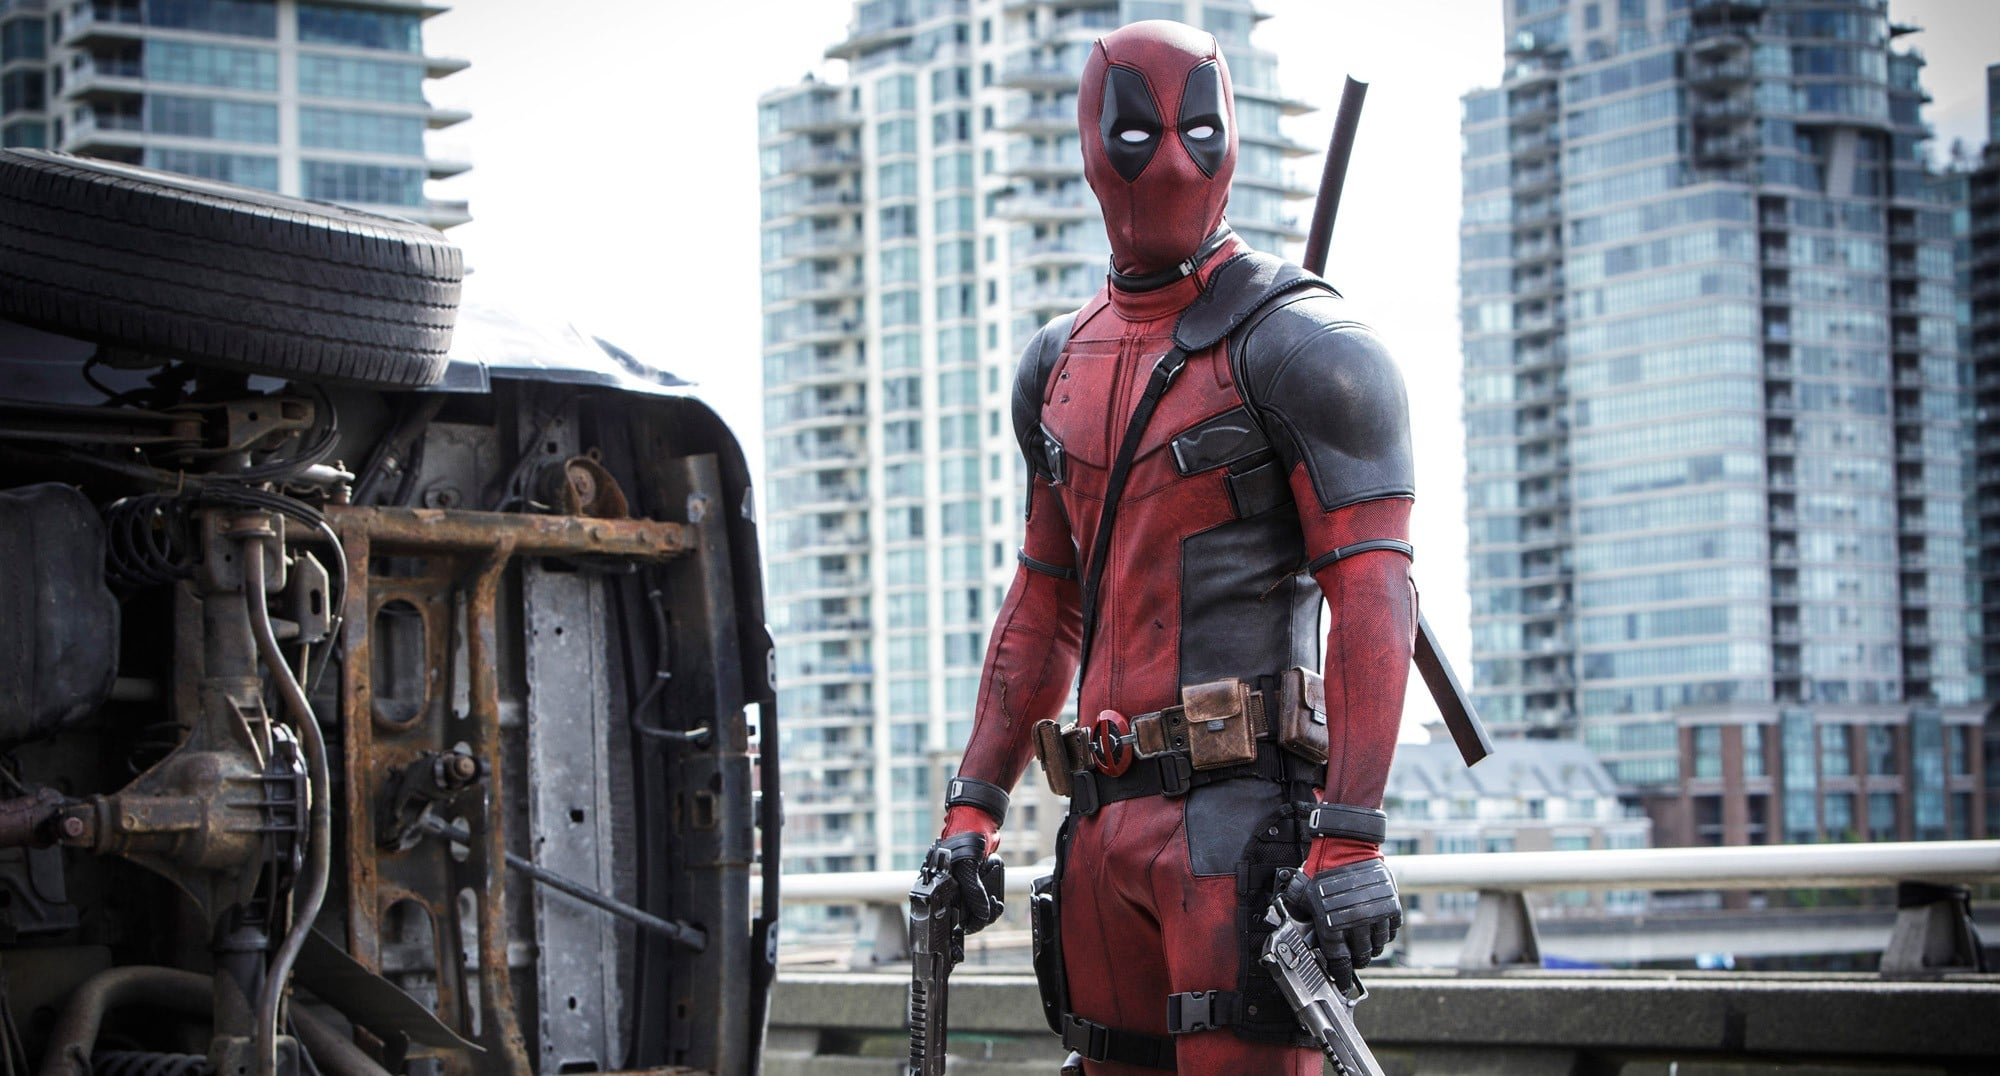 Vancouver Filmed Deadpool Breaks Box Office Records - Deadpool Pumped Over $40 Million Into BC's Economy